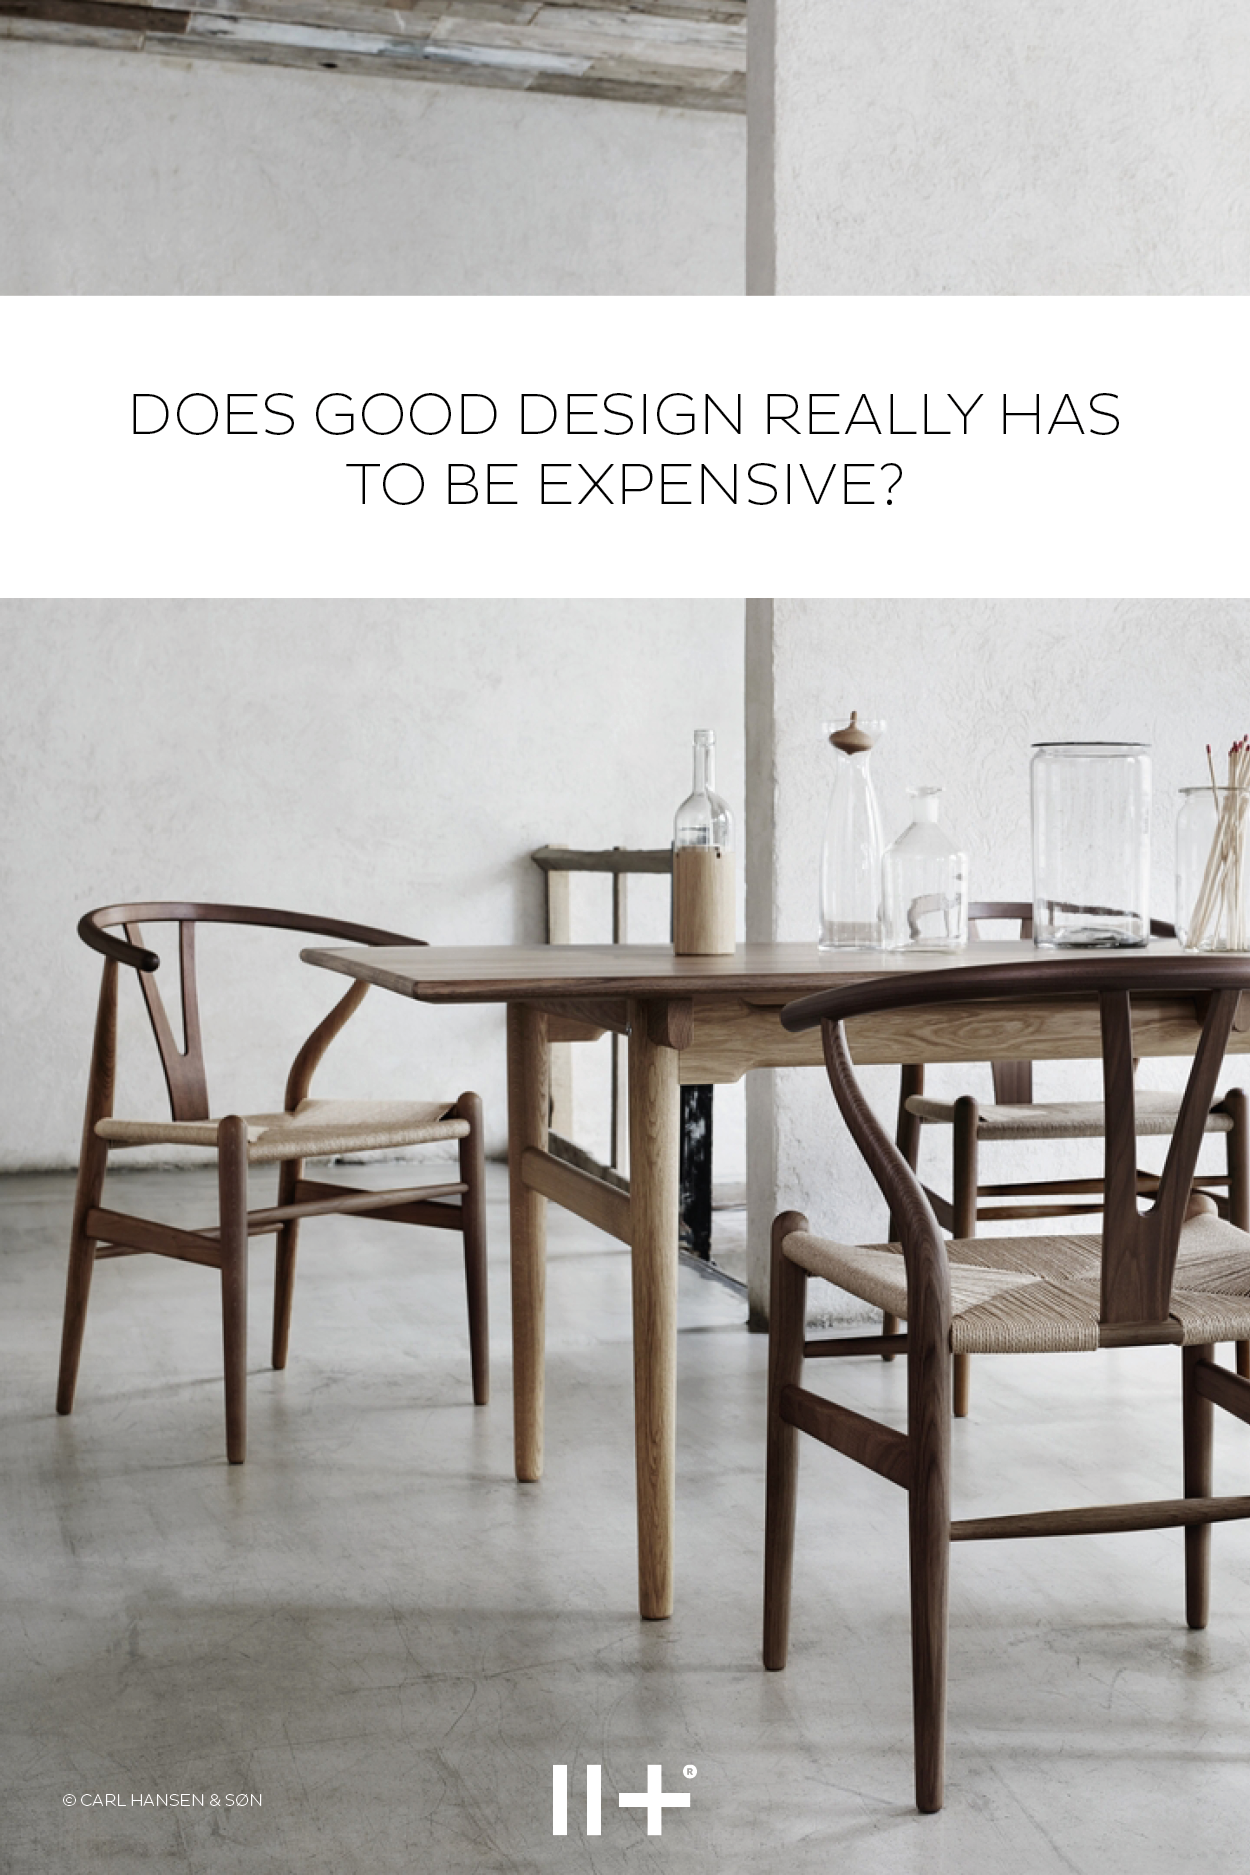 The Wishbone Chair by Carl Hansen & Søn has been a prime